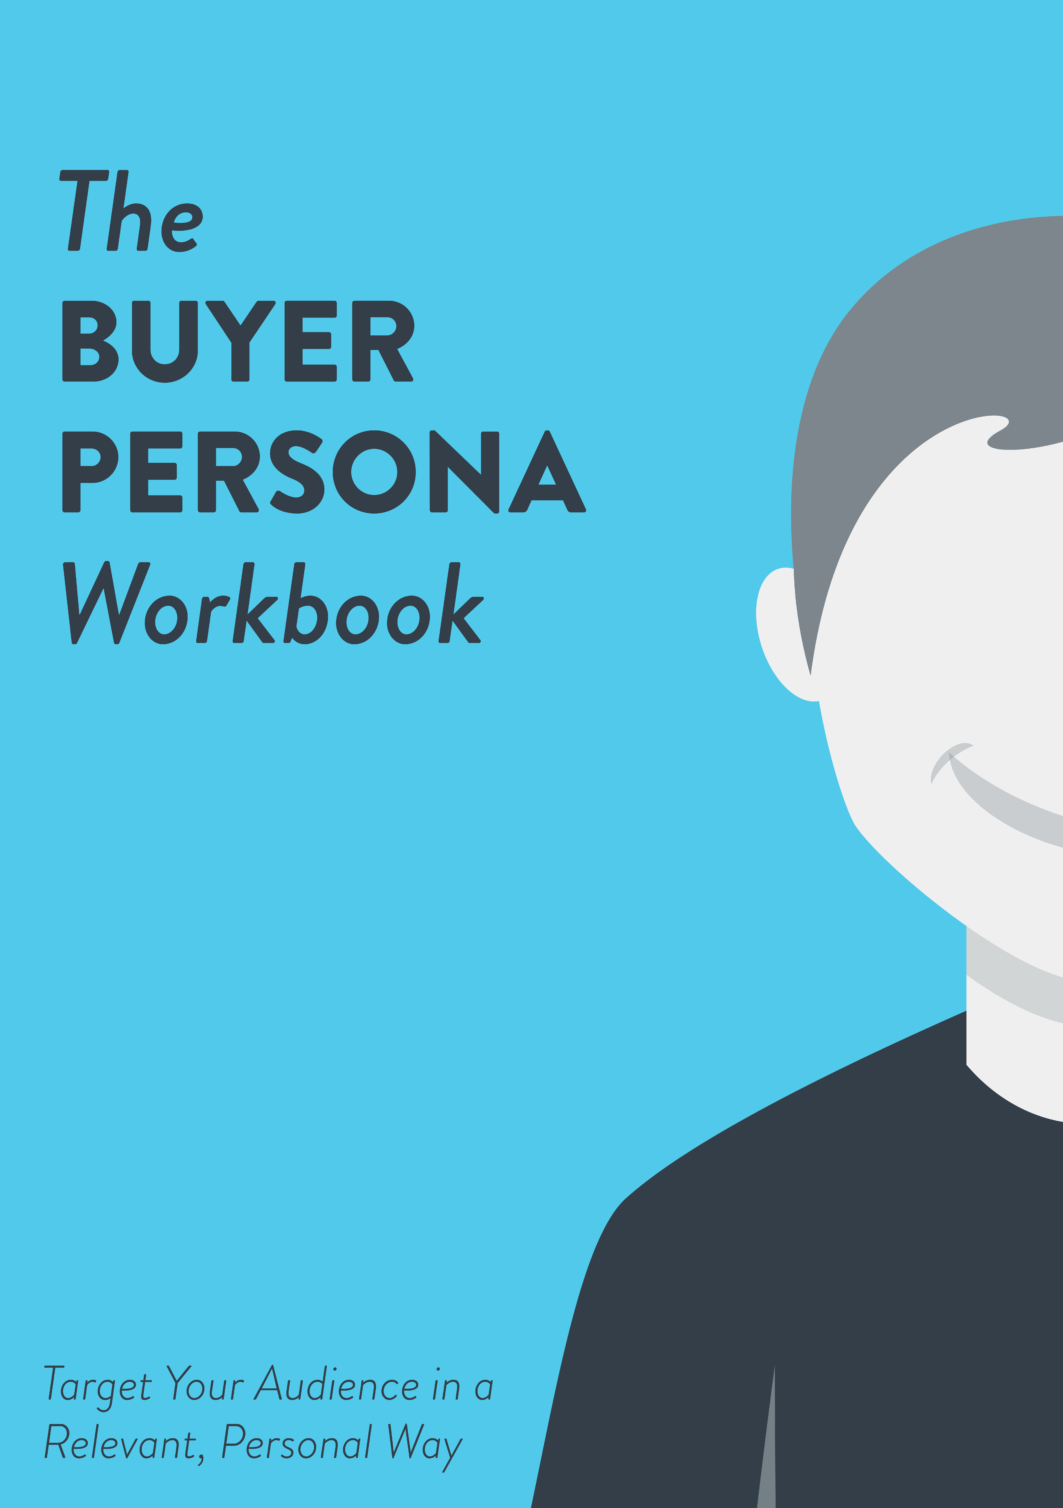 persona-workbook-cover_REVISED-01